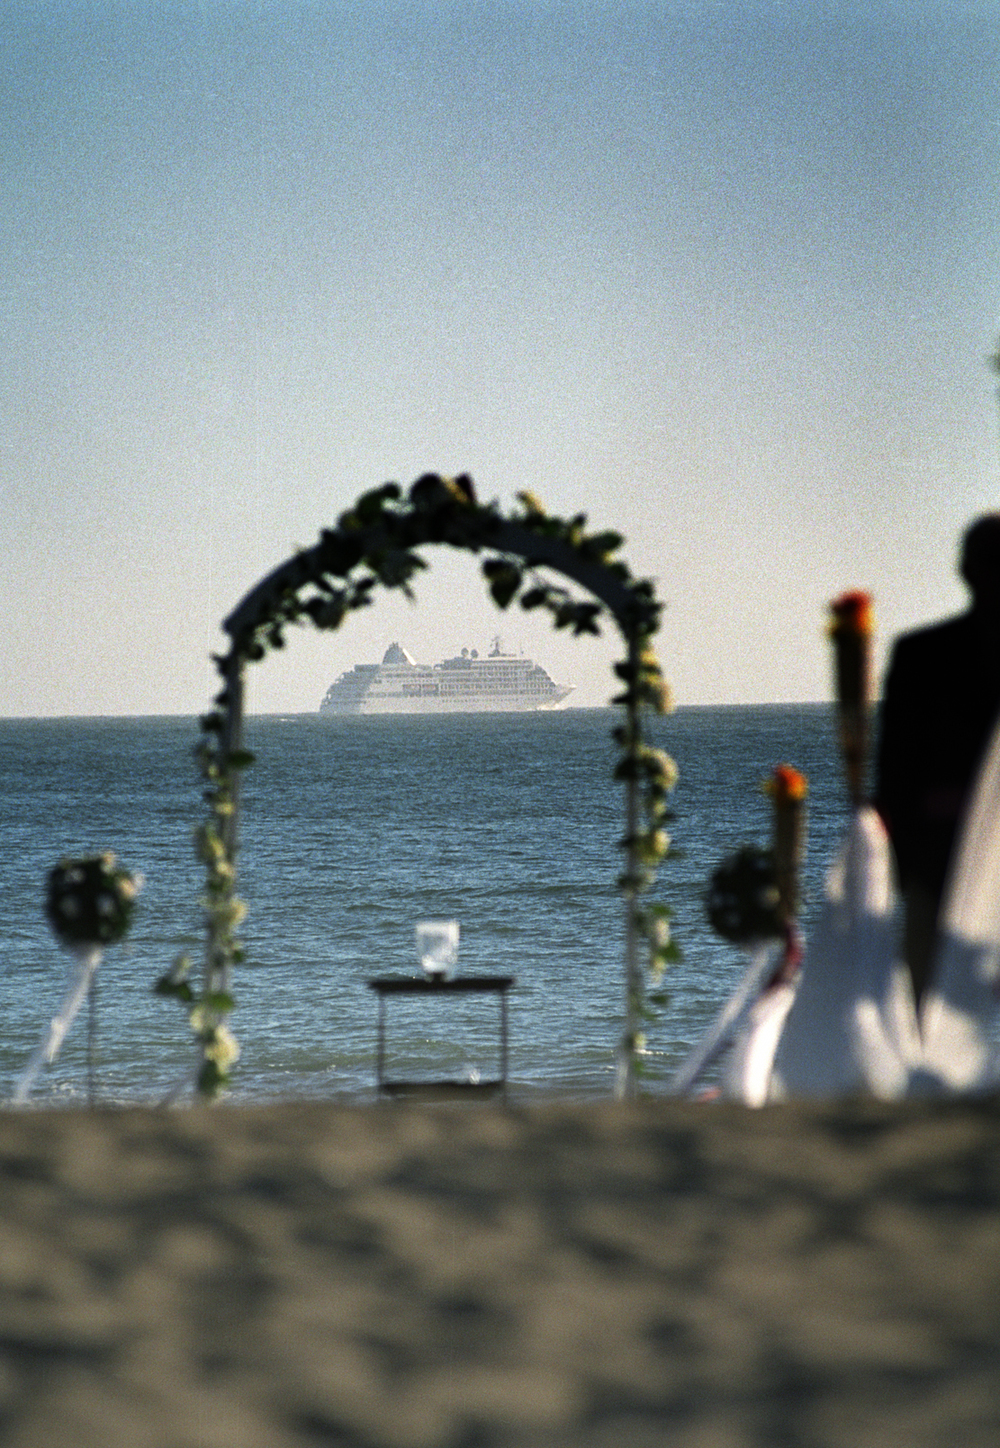 wedding_ship.jpg